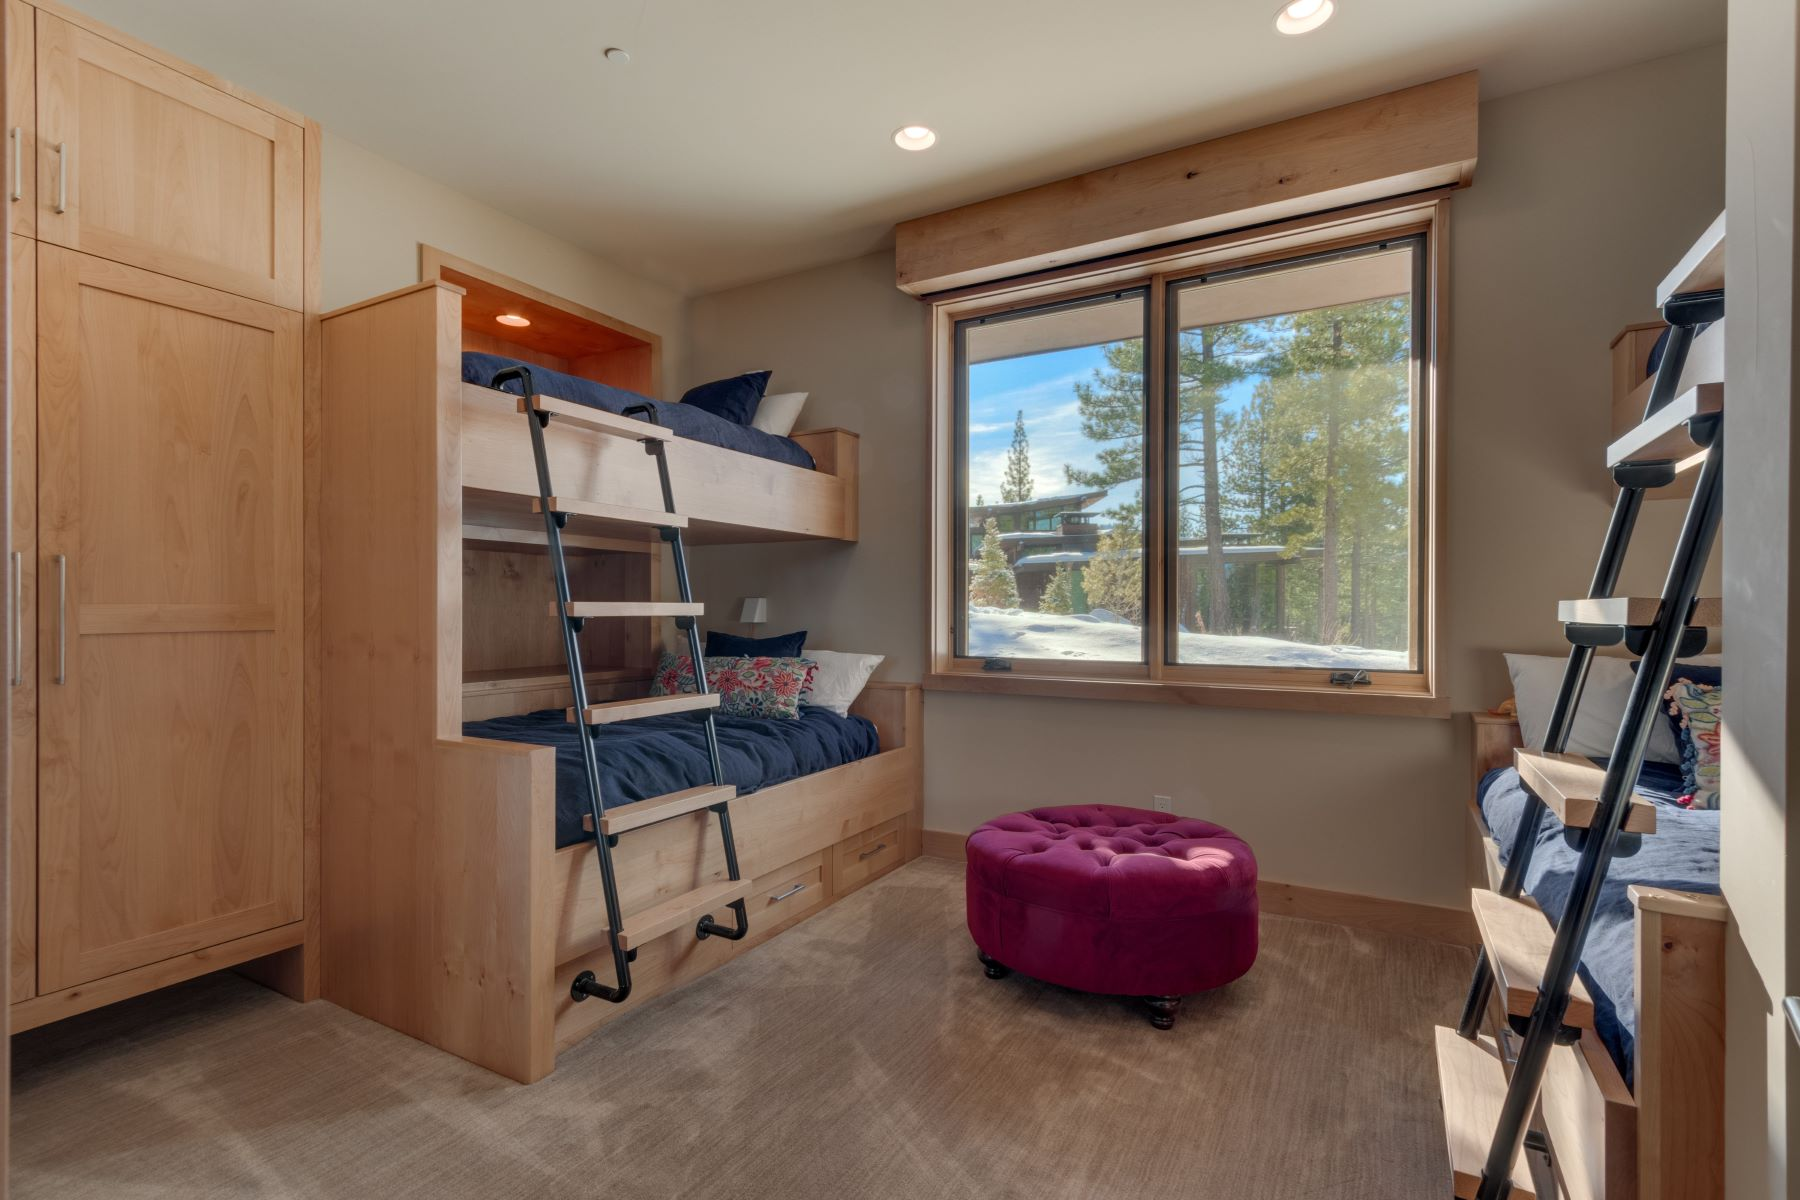 Additional photo for property listing at 8273 Ehrman Drive, Truckee, CA 8273 Ehrman Drive Truckee, California 96161 United States